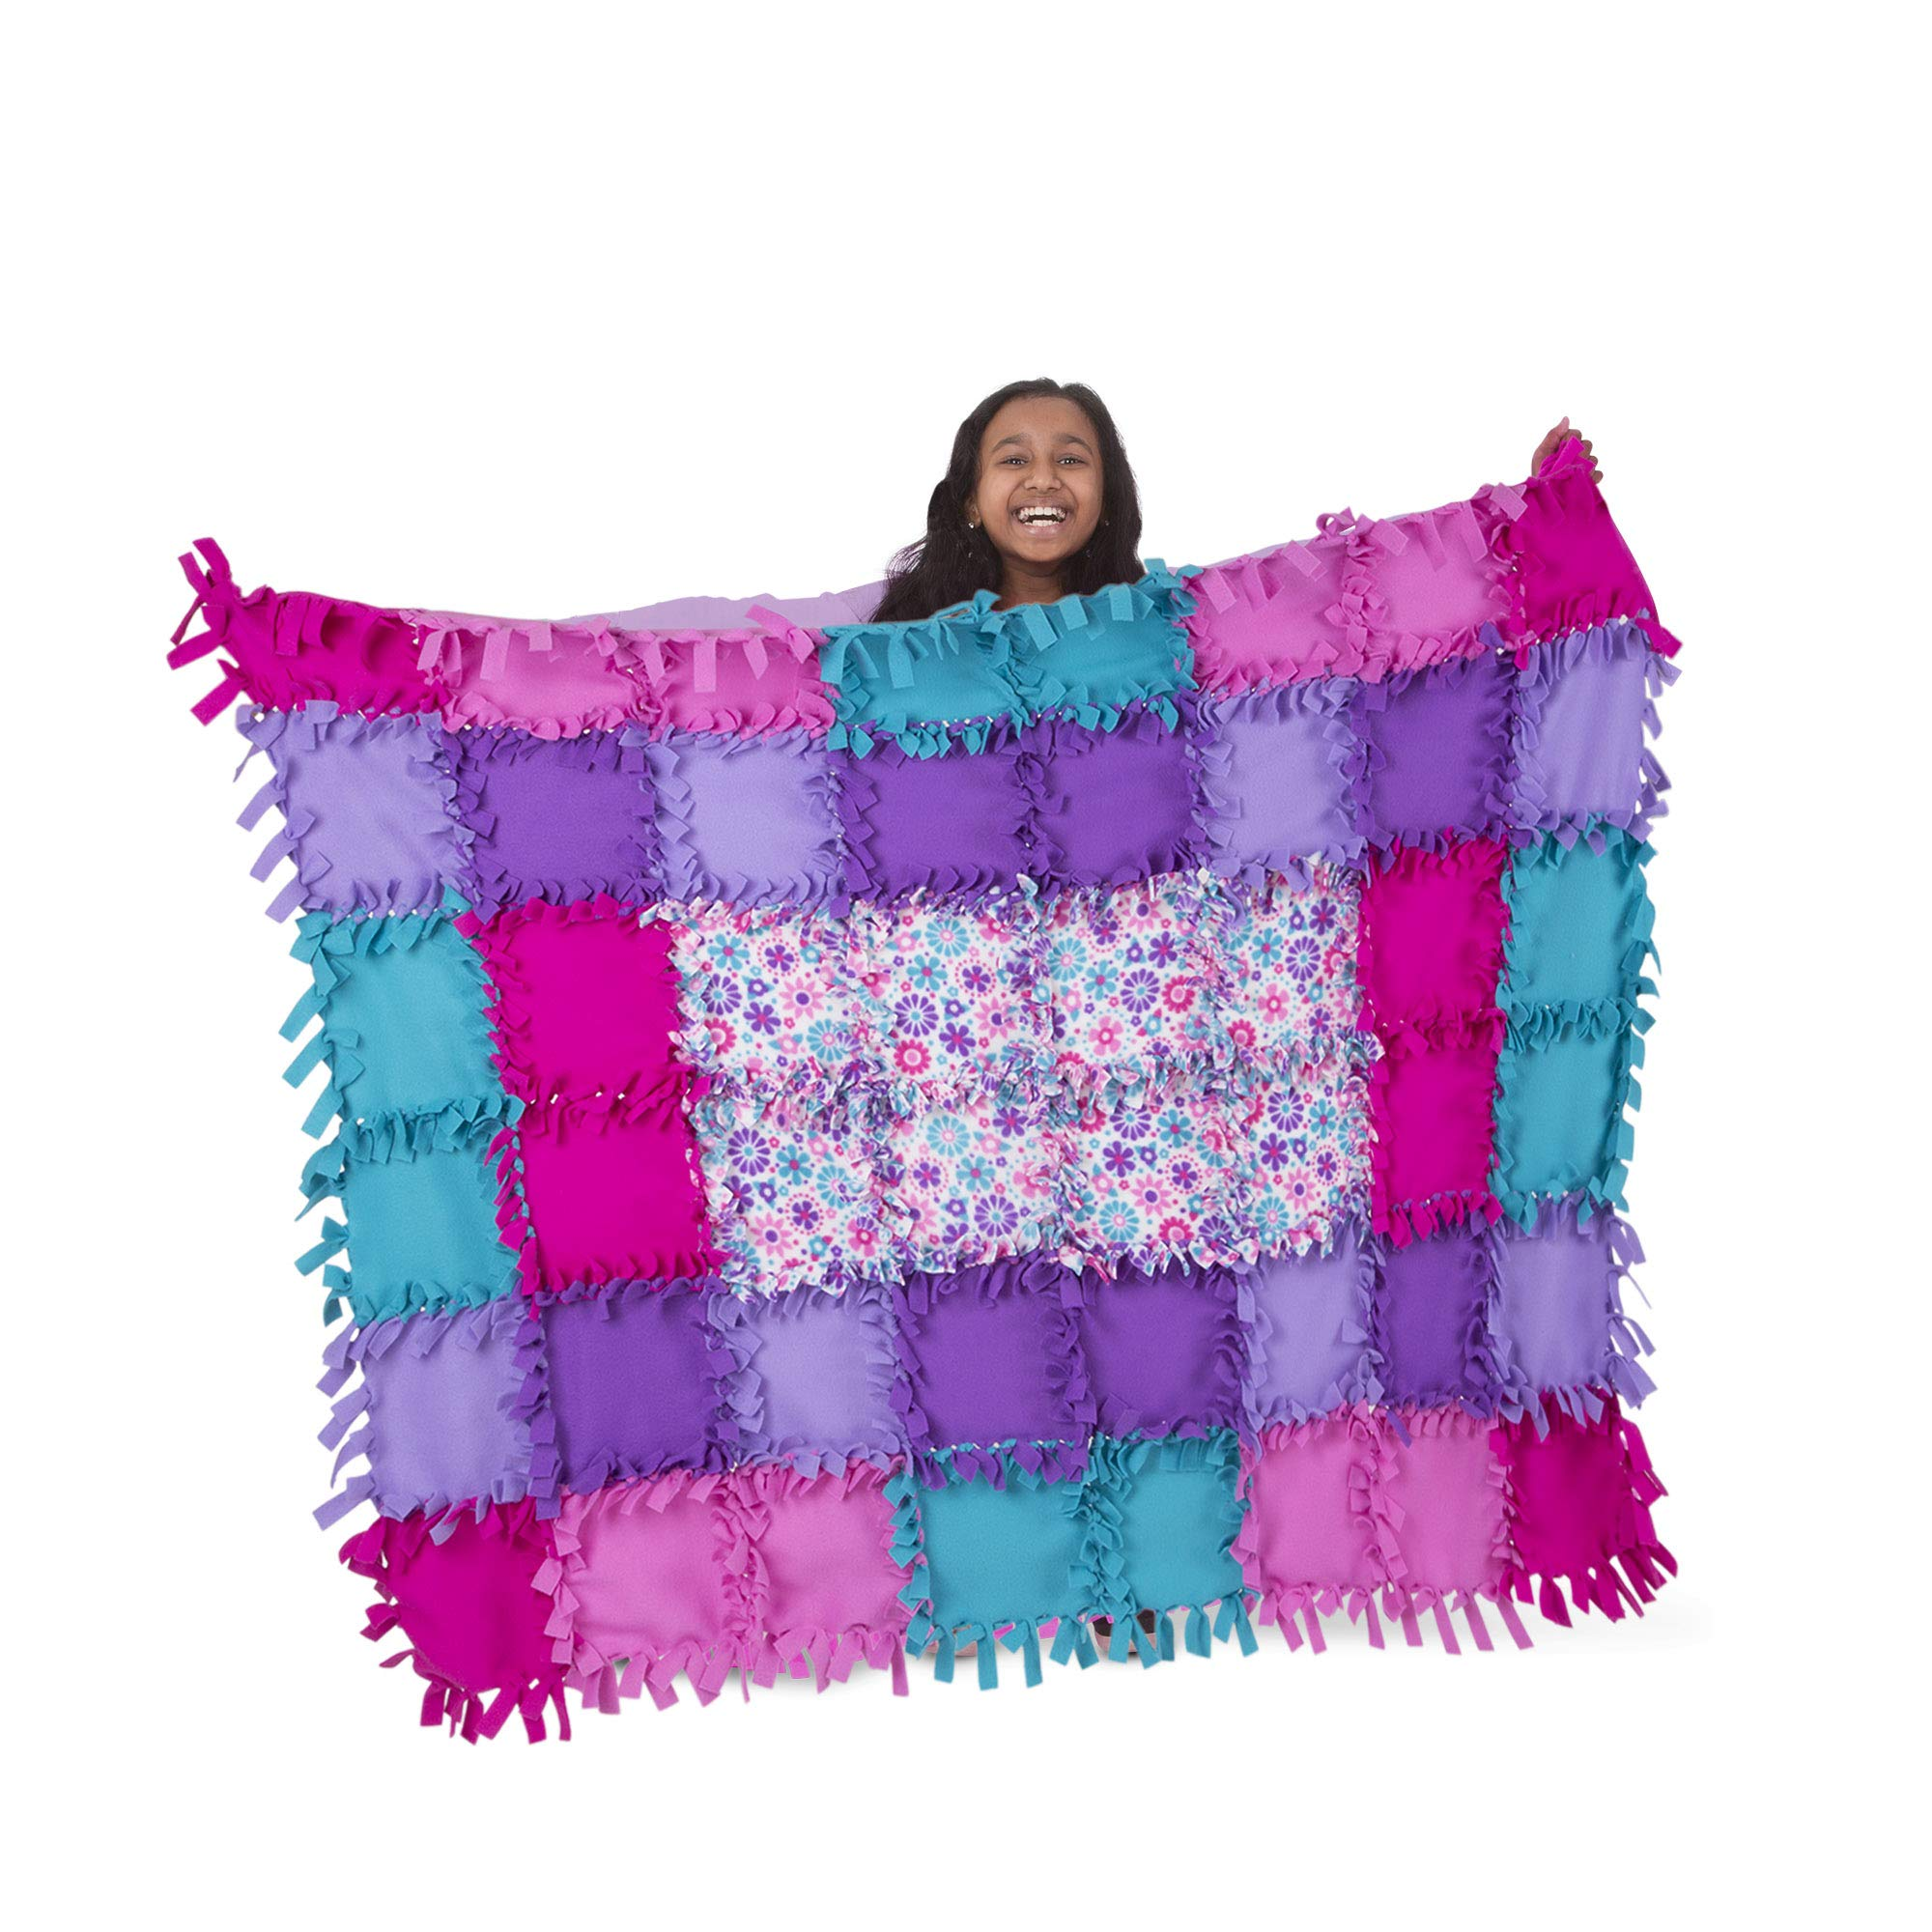 Melissa & Doug Created by Me! Flower Fleece Quilt - The Original (No-Sew Fleece Quilt, Soft Material, 48 Pieces, 5′W × 4′L, Great Gift for Girls & Boys - Best for 6, 7, 8 Year Olds & Up)